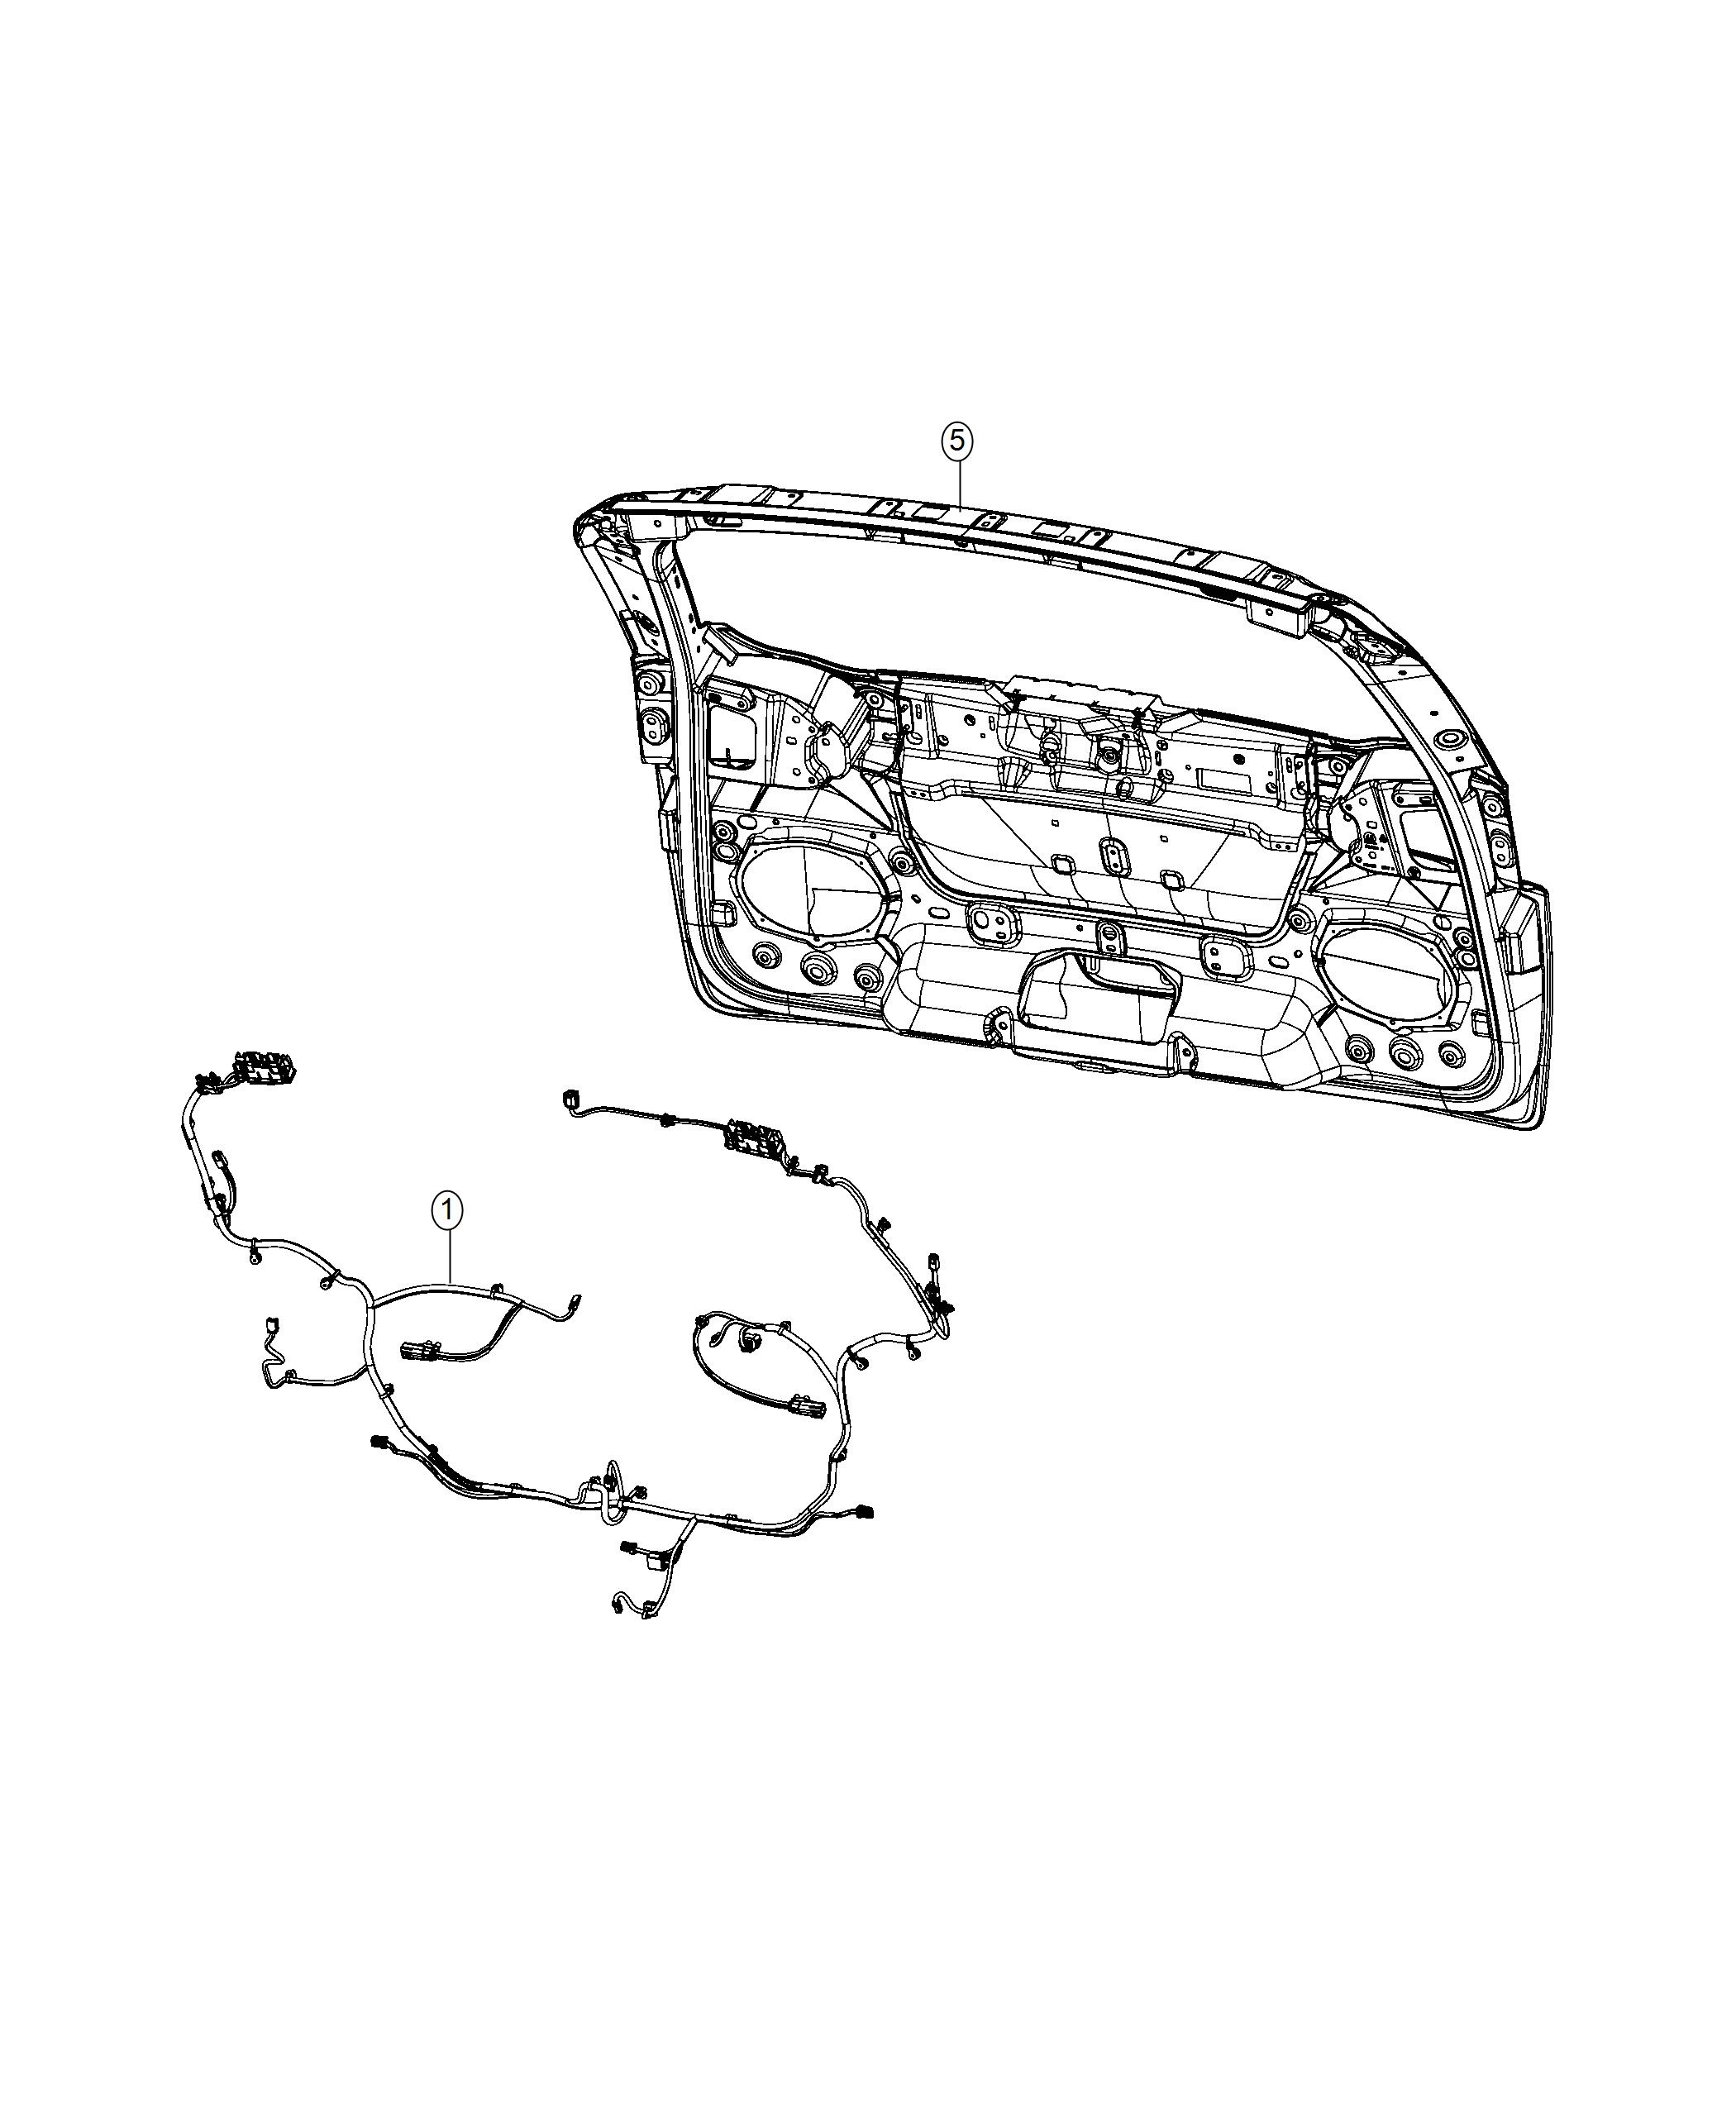 Chrysler Pacifica Wiring. Liftgate. System, speakers